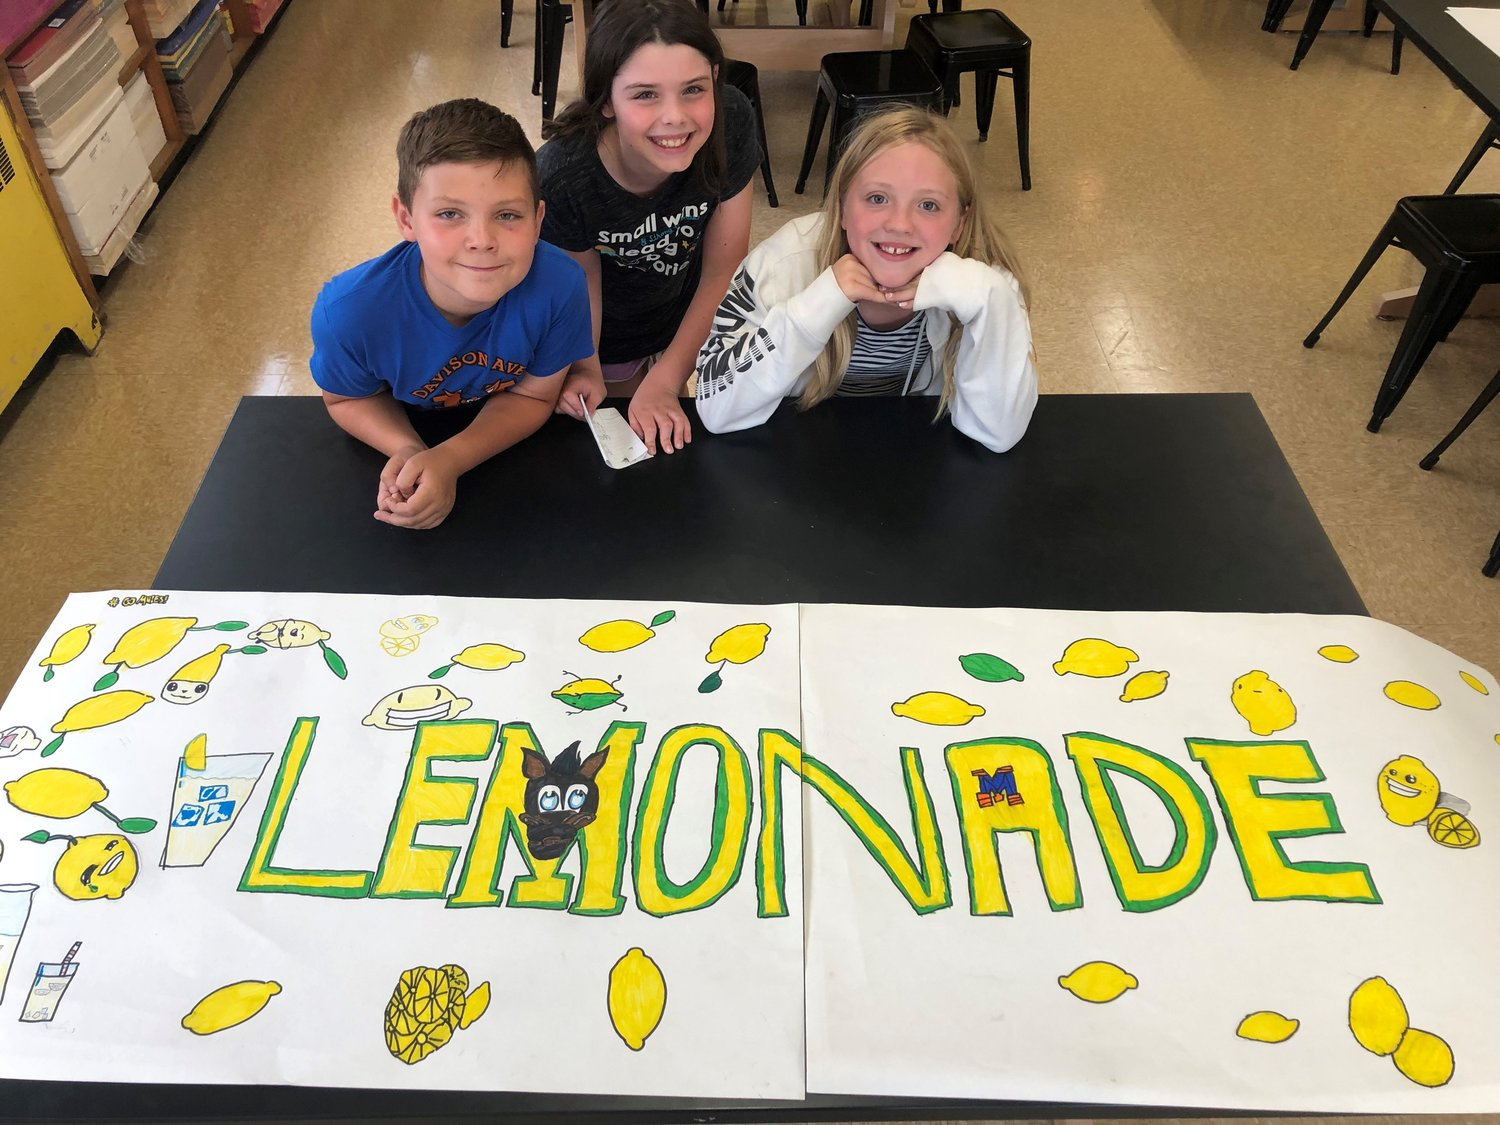 Davison Avenue School students Luke Major, left, Maeve Schumacher and Kate Wolff helped to set up a lemonade stand to raise funds for the Alex's Lemonade Stand Foundation last month.